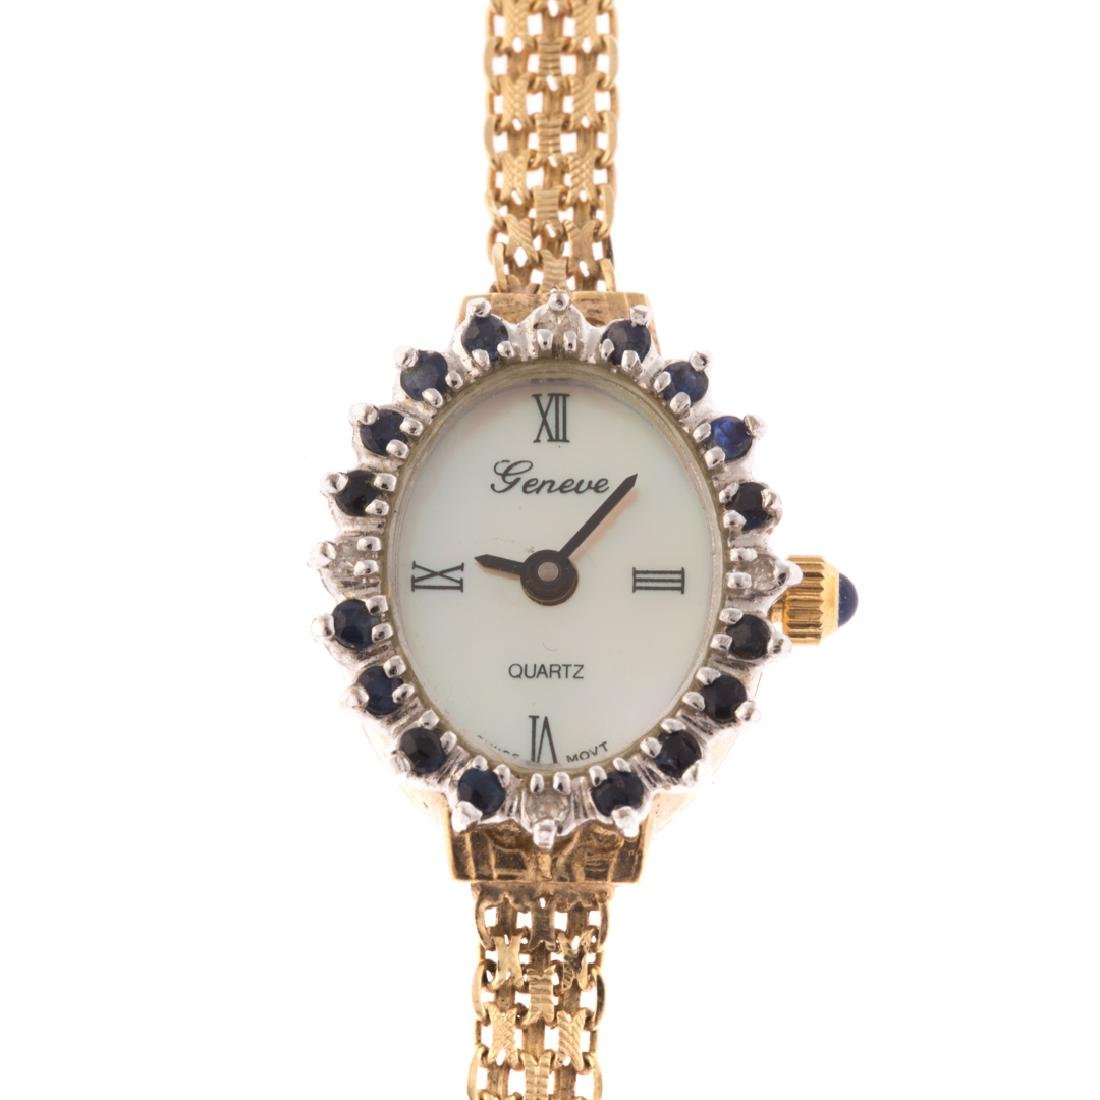 A Lady's 14K Geneve Dress Watch with Sapphires